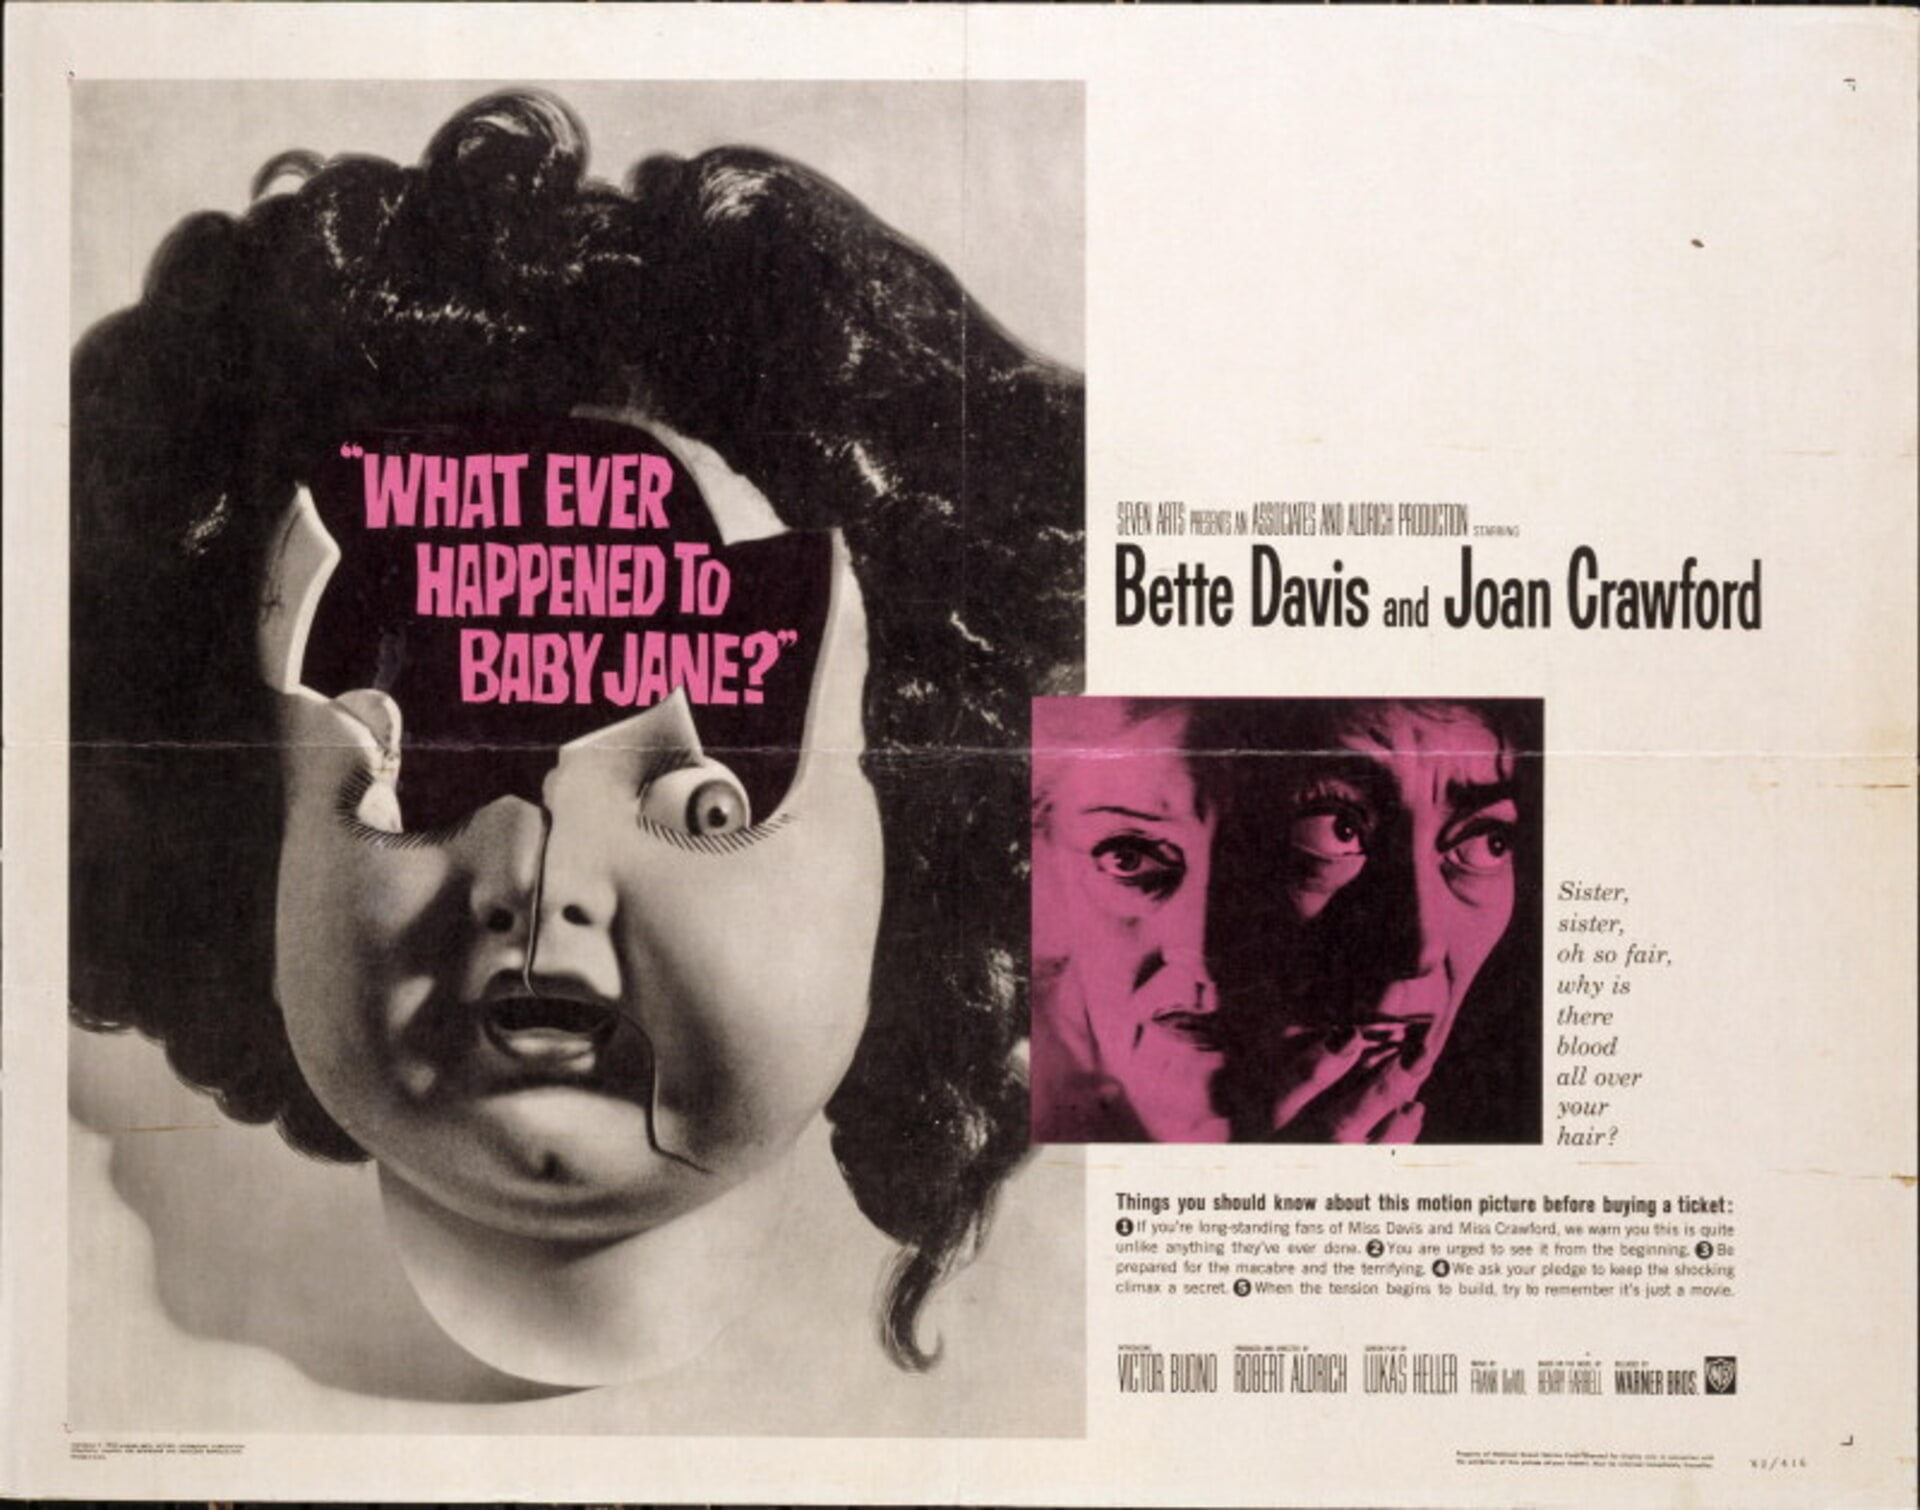 What Ever Happened to Baby Jane? - Poster 2